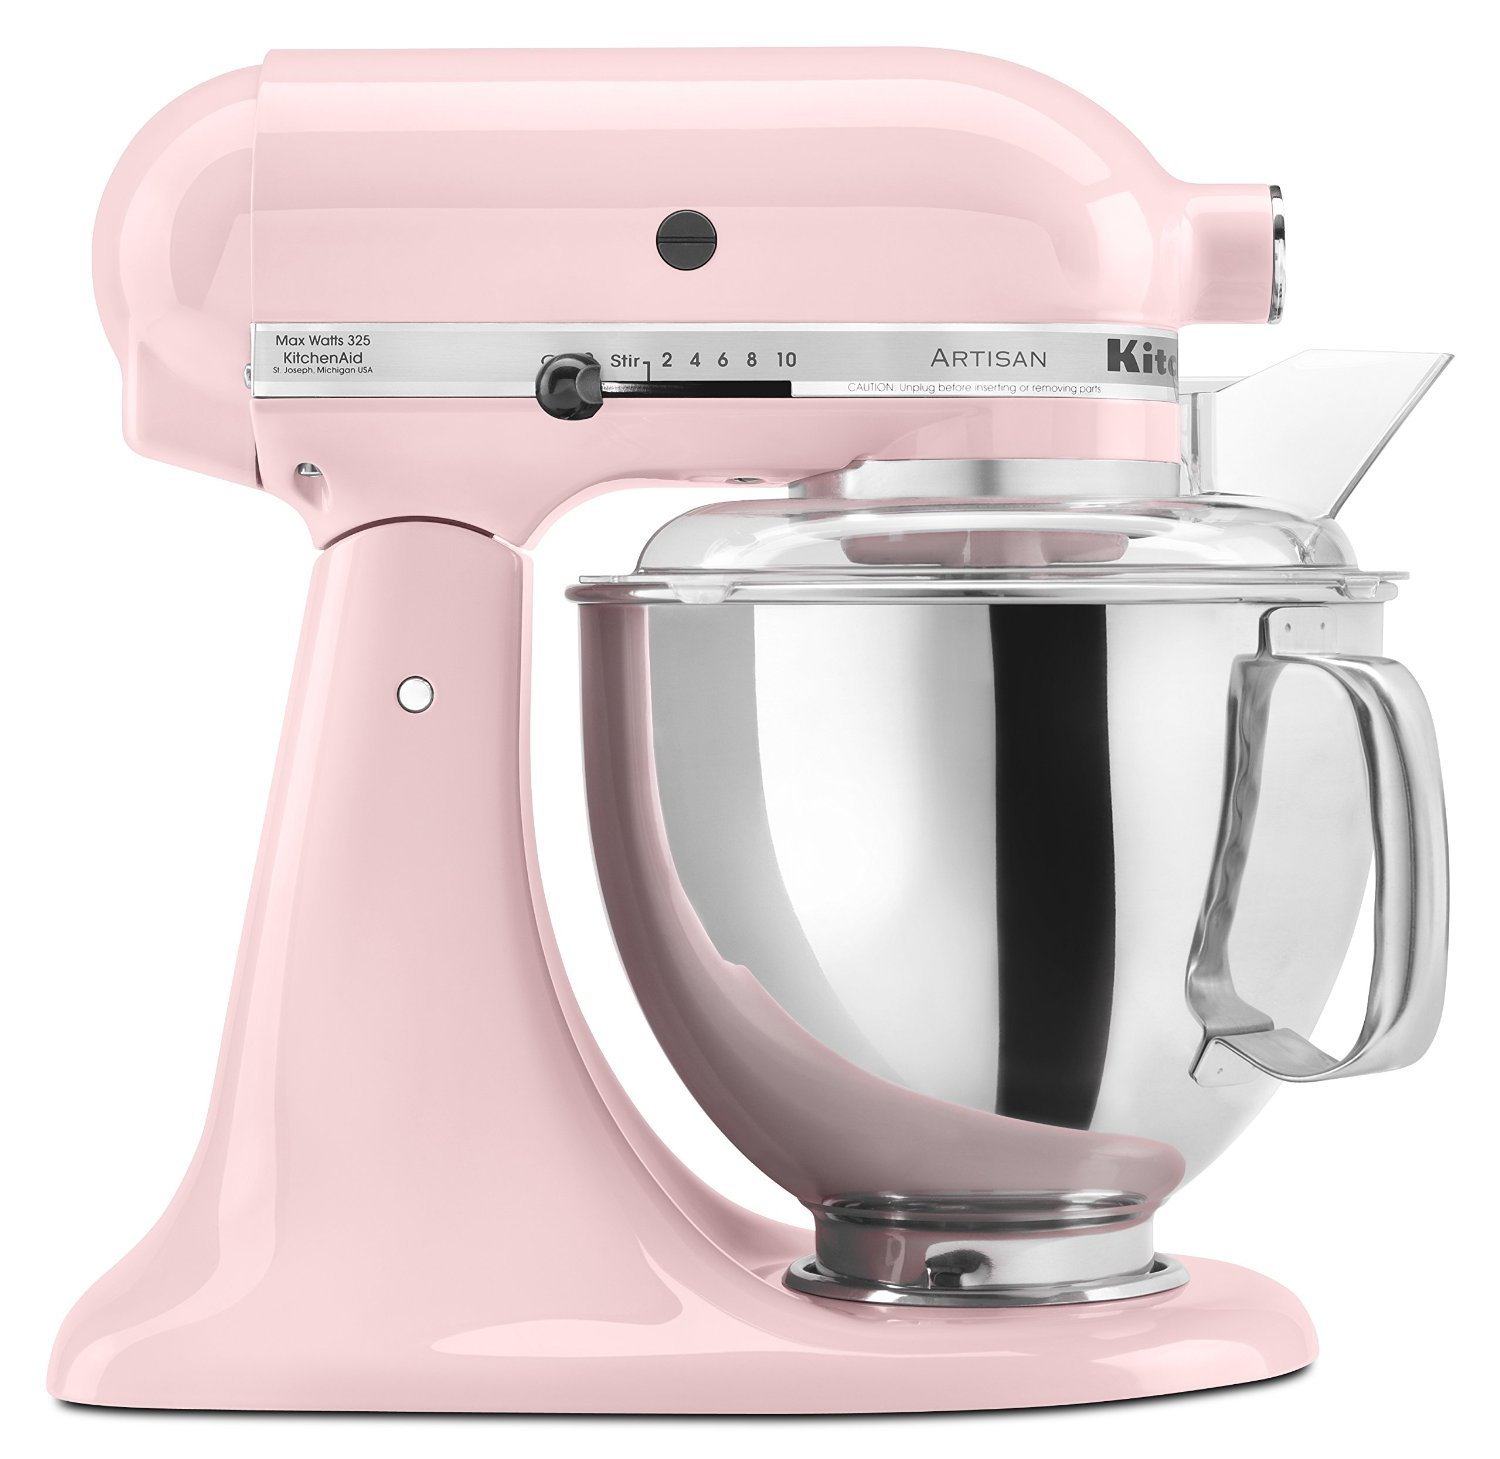 Kitchen small appliances usa - Amazon Com Kitchen Aid 5ksm150 Stand Mixer Empire Red 220 Volts Only Will Not Work In The Usa Kitchen Dining